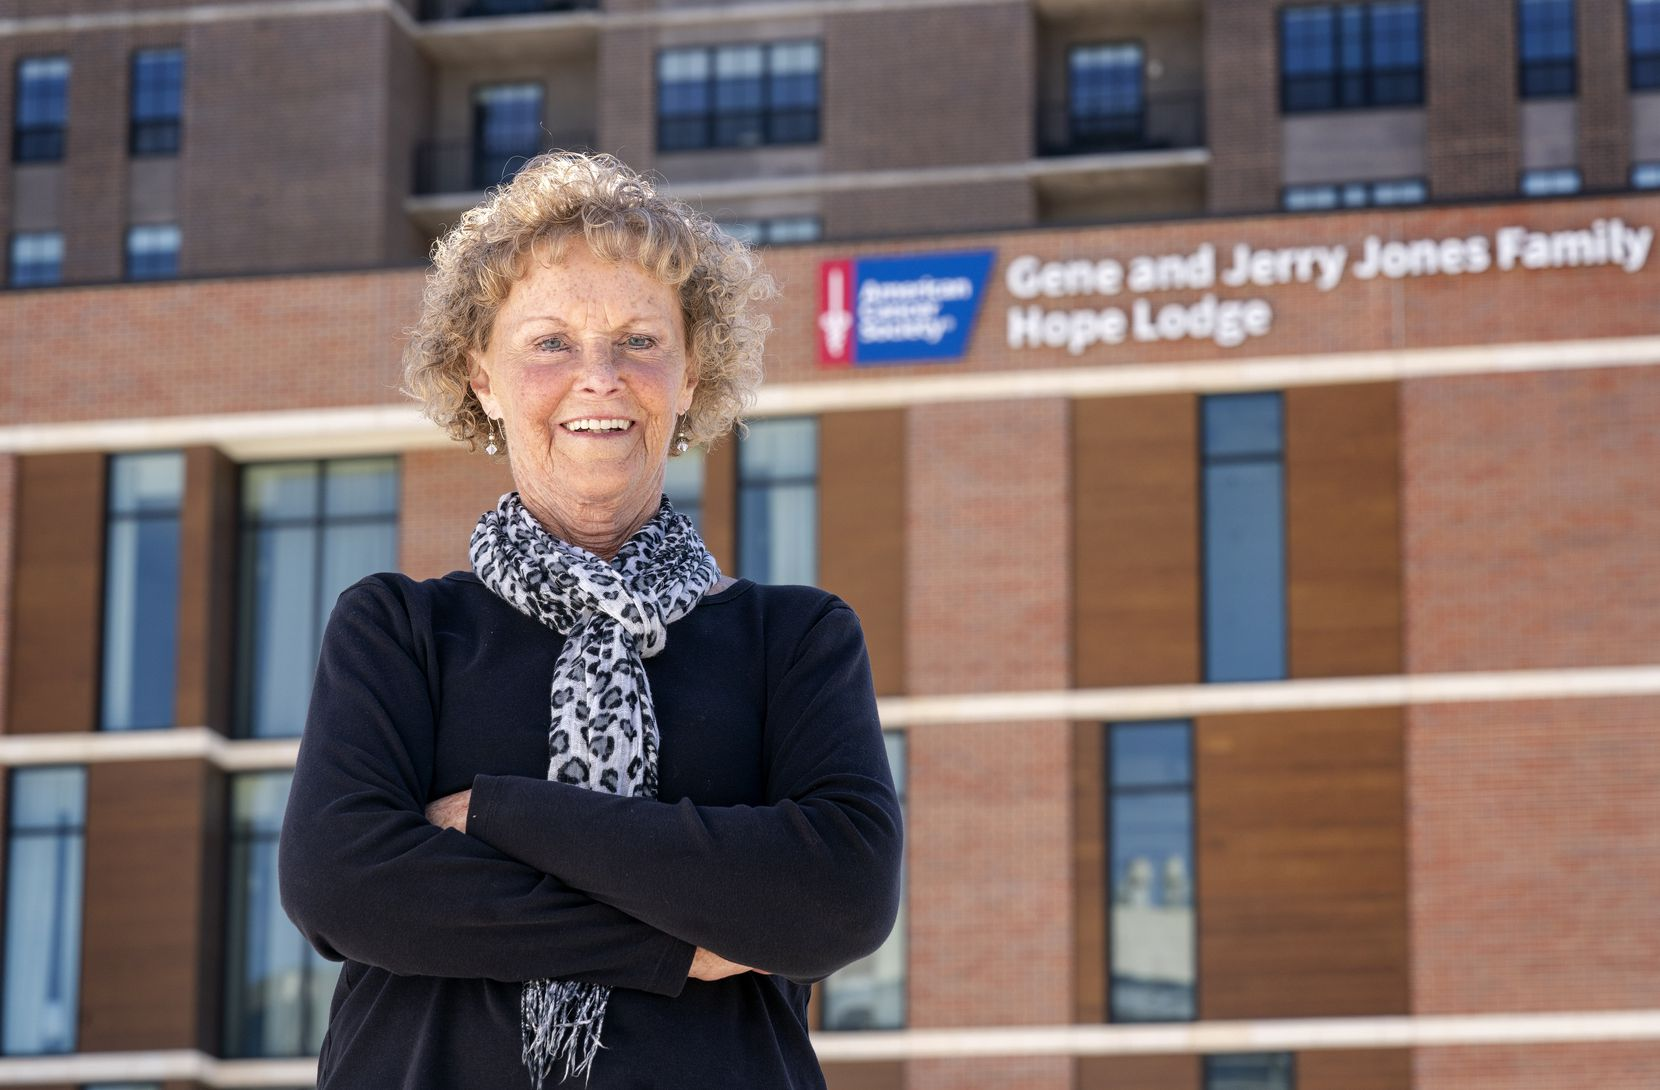 Rose Riley outside the Gene and Jerry Jones Family Hope Lodge, a facility in Dallas that provides free lodging to cancer patients. Riley, who drives from Lawton, Okla., for treatment at UT Southwestern, was the first person to stay at the new facility in Deep Ellum.